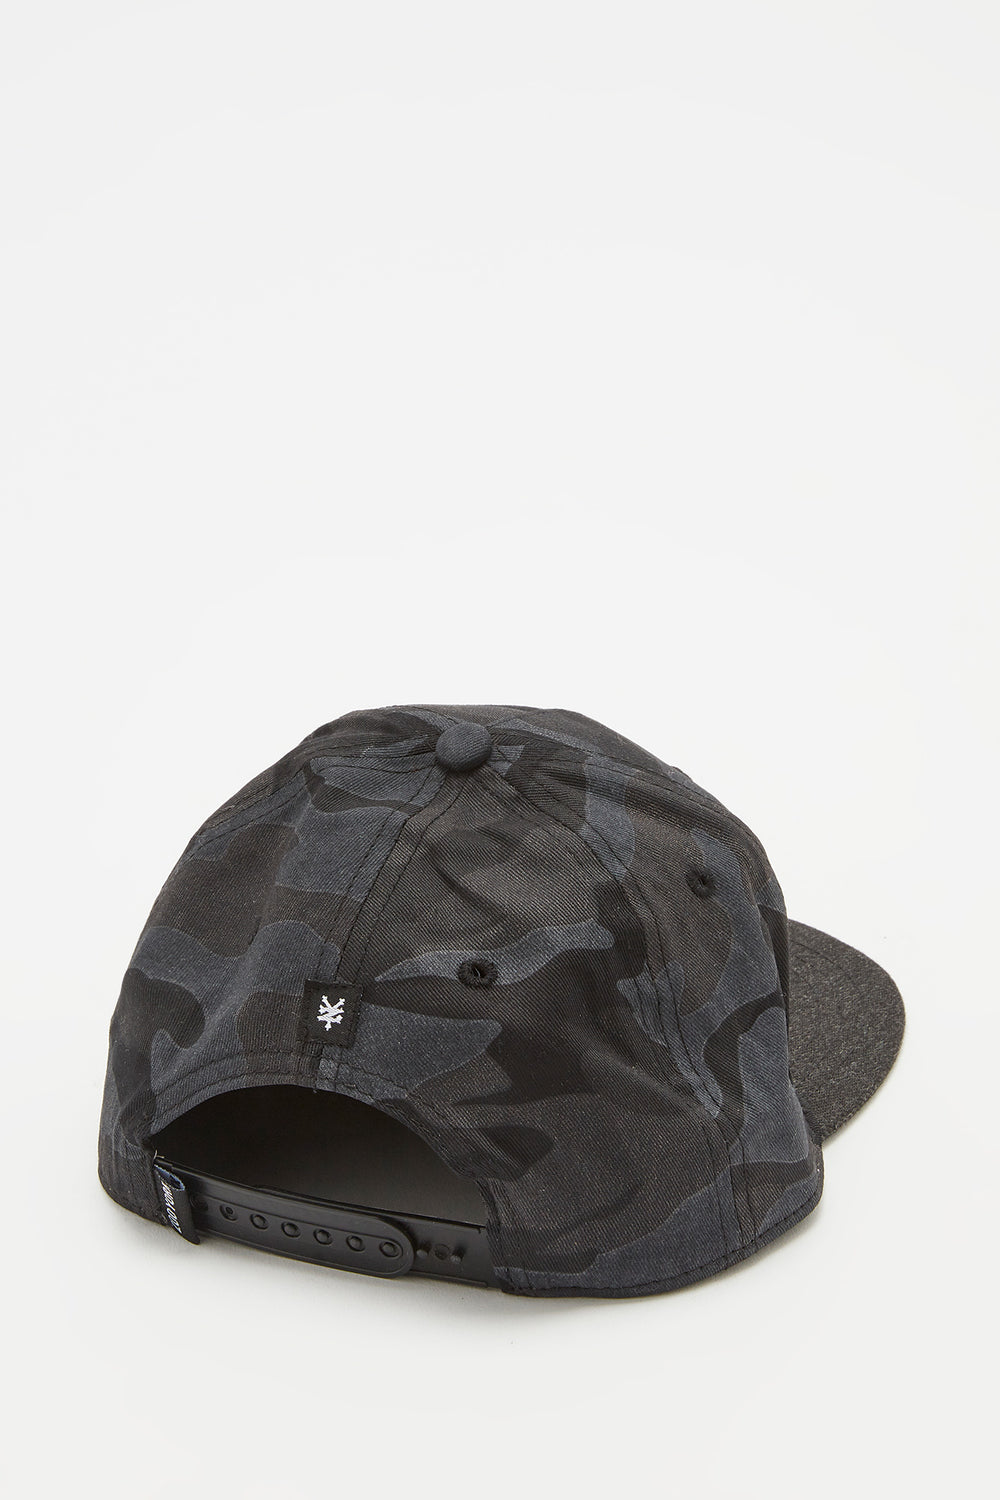 Casquette Camouflage Zoo York Homme Noir